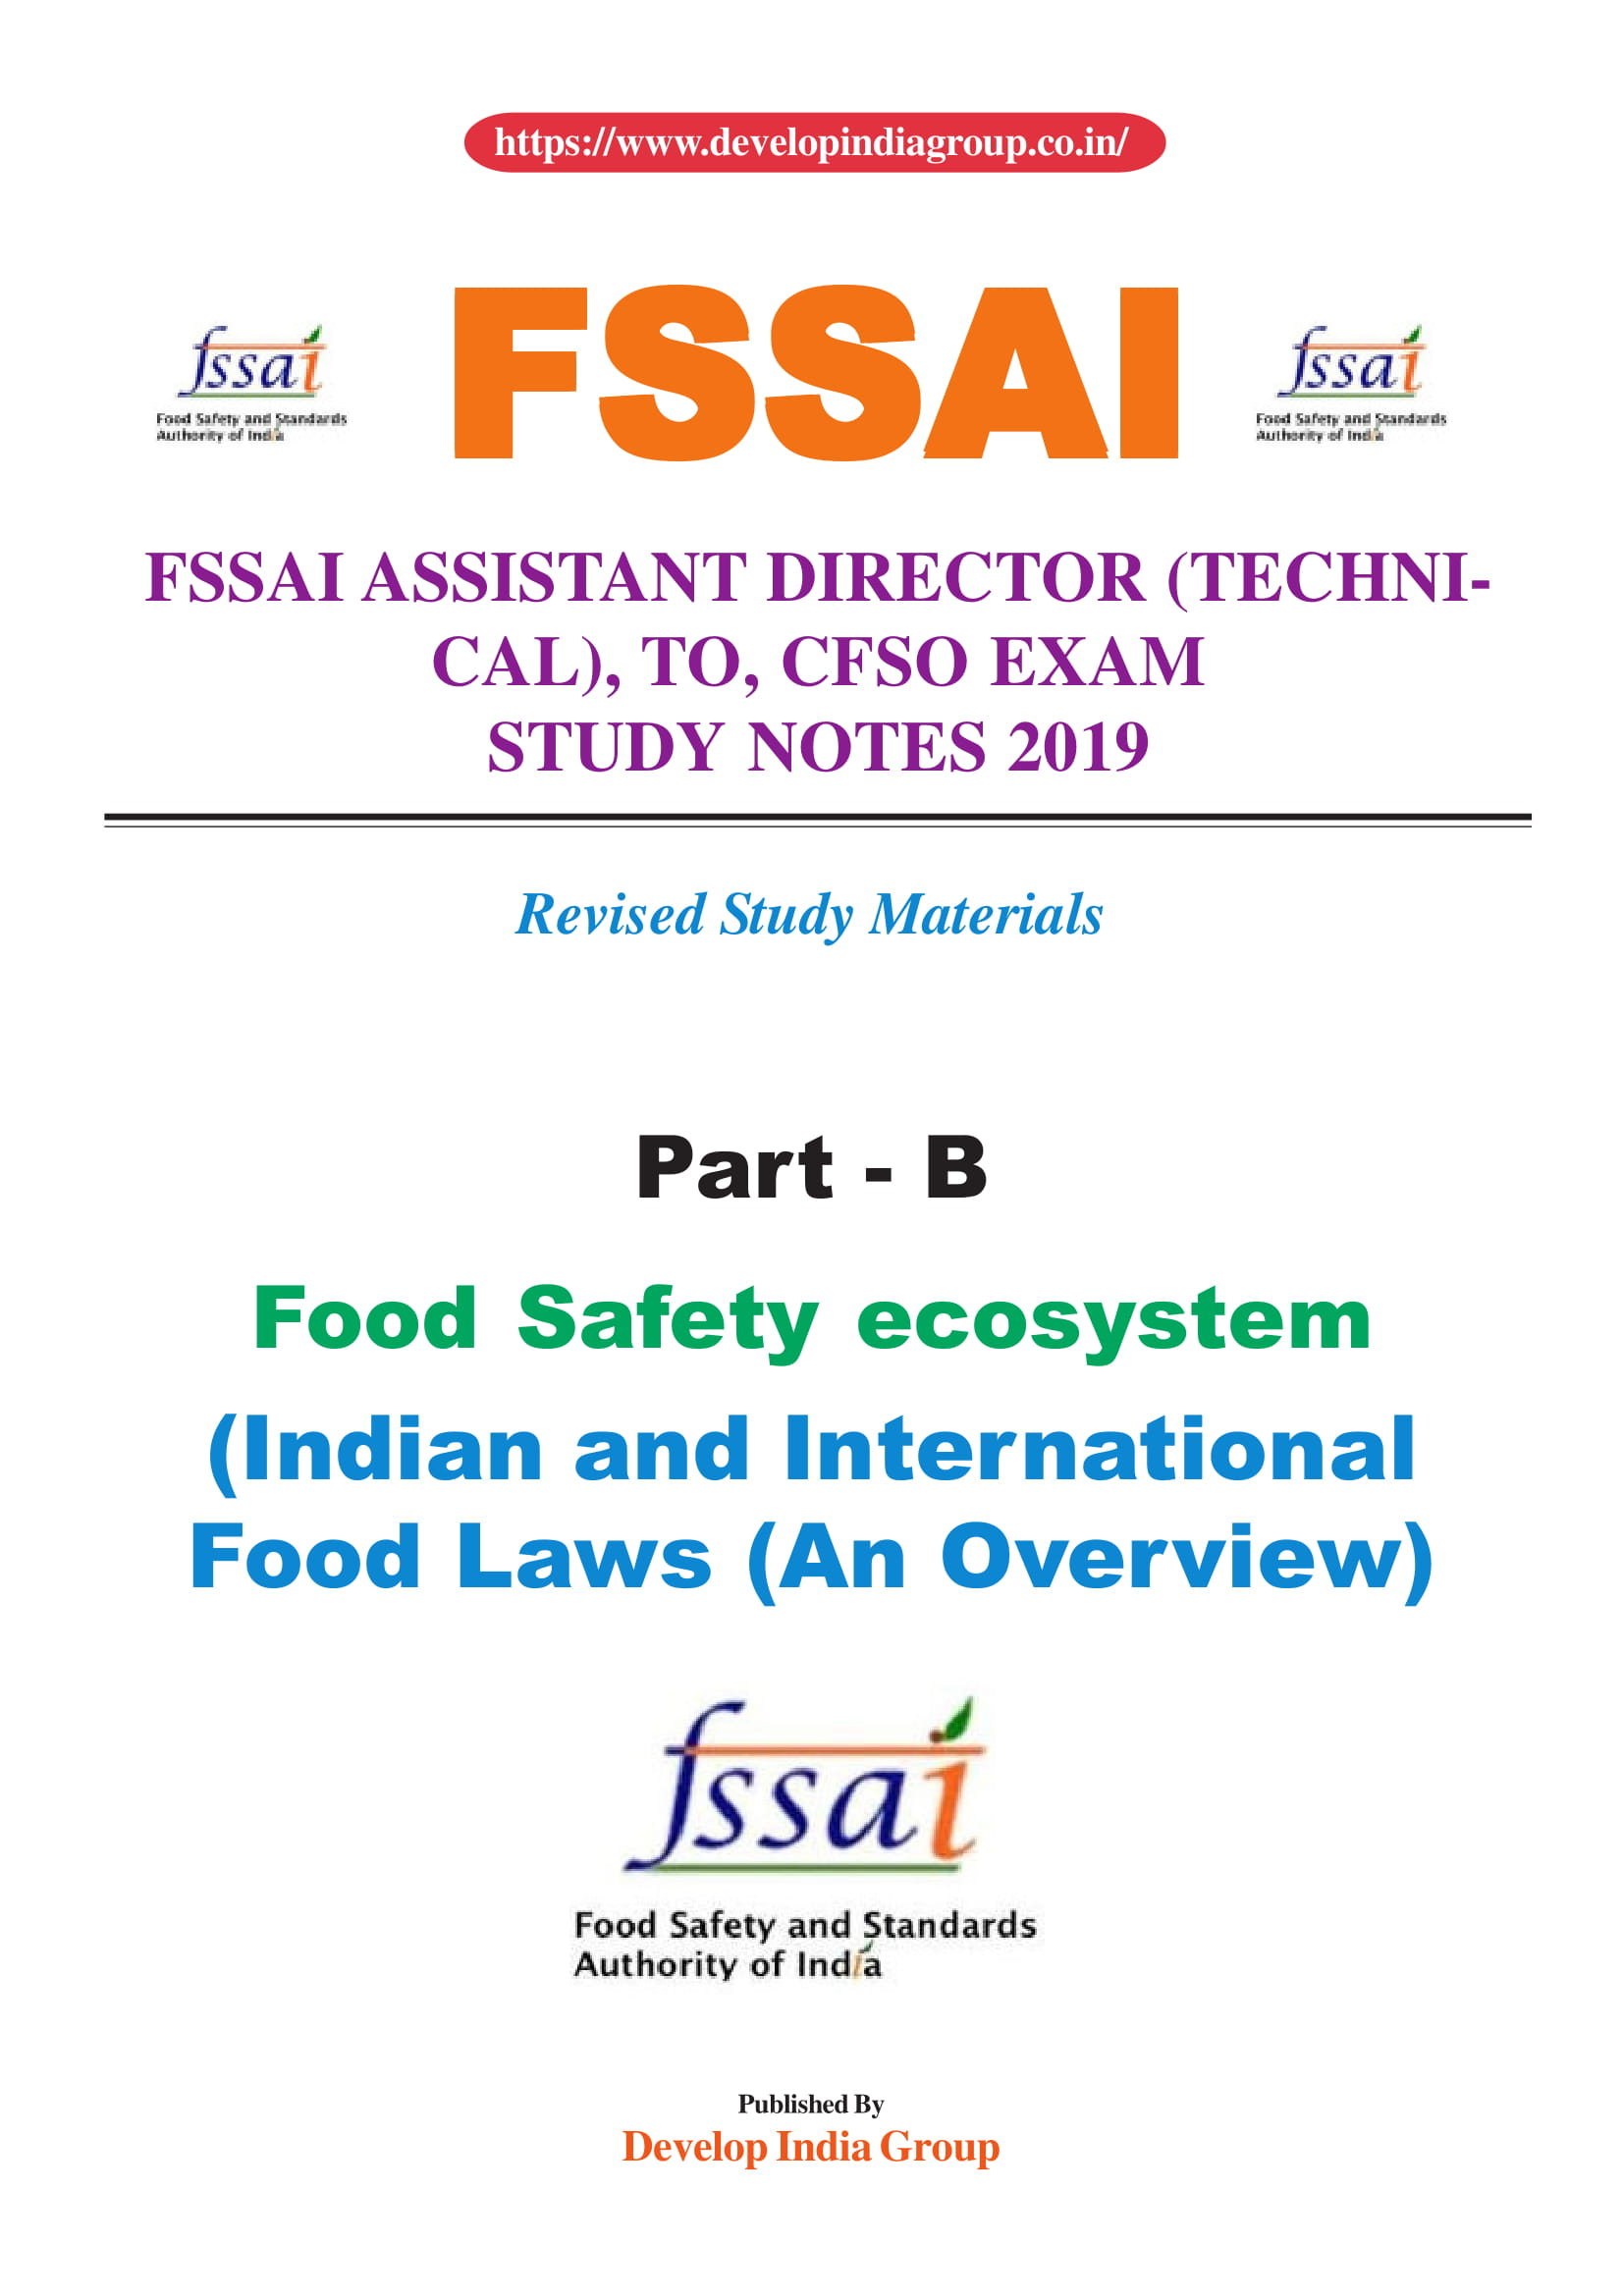 FSSAI Exam 2019 (Written Exam) Complete Study Notes available